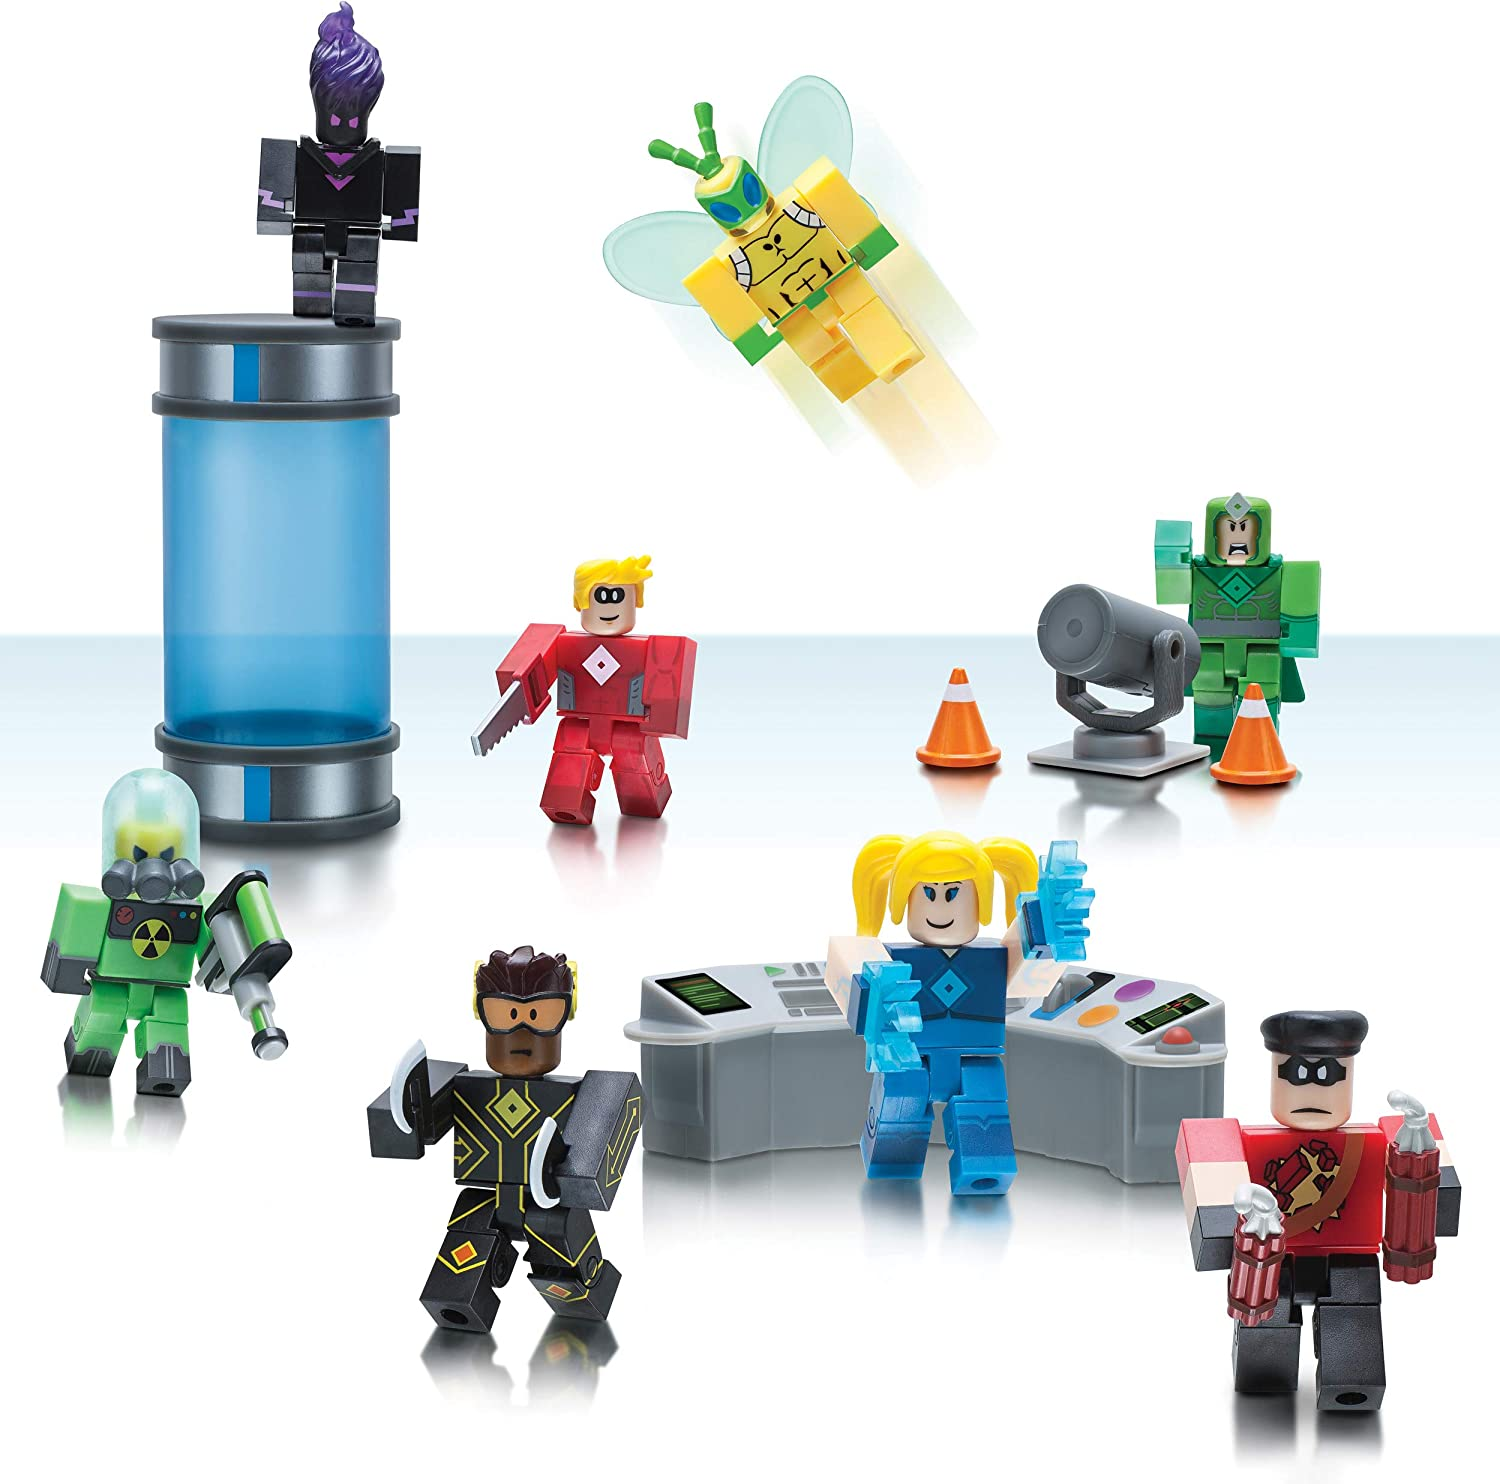 Roblox Universe Event All Items Amazon Com Roblox Action Collection Heroes Of Robloxia Playset Includes Exclusive Virtual Item Toys Games